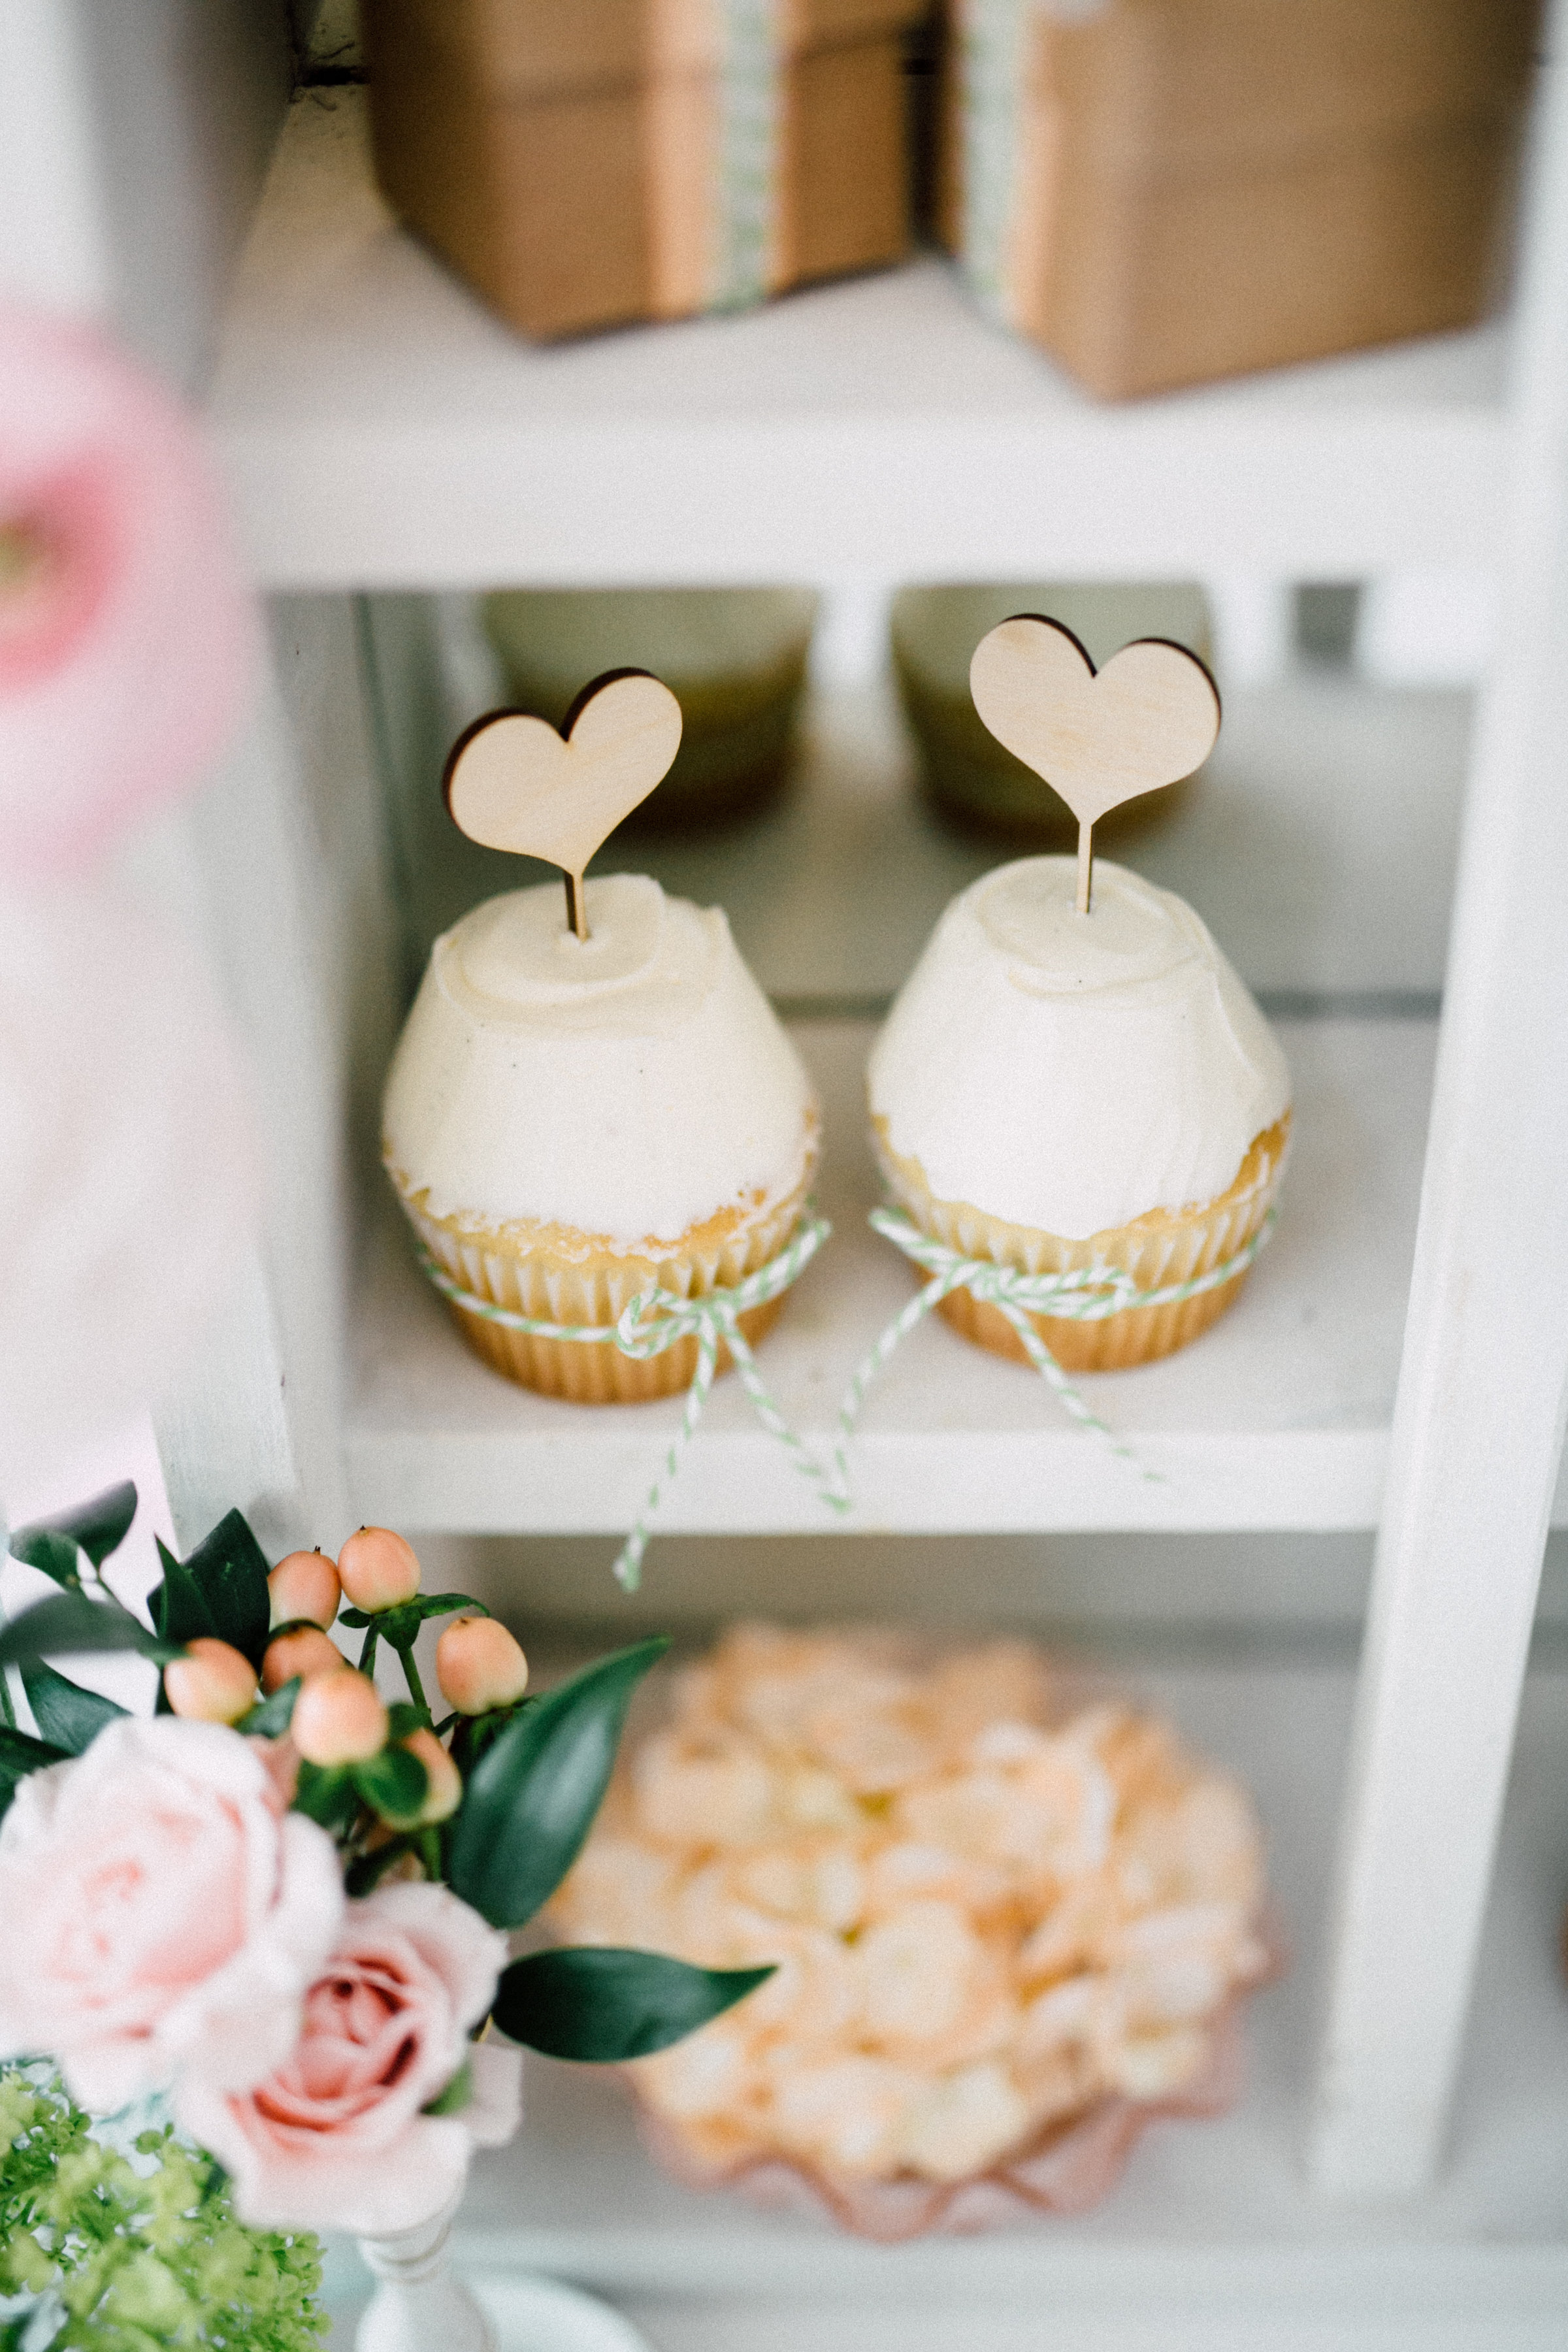 August In Bloom - Heart topper cupcakes - Bun In The Oven Baby Shower (Style Me Pretty & SMP Living)